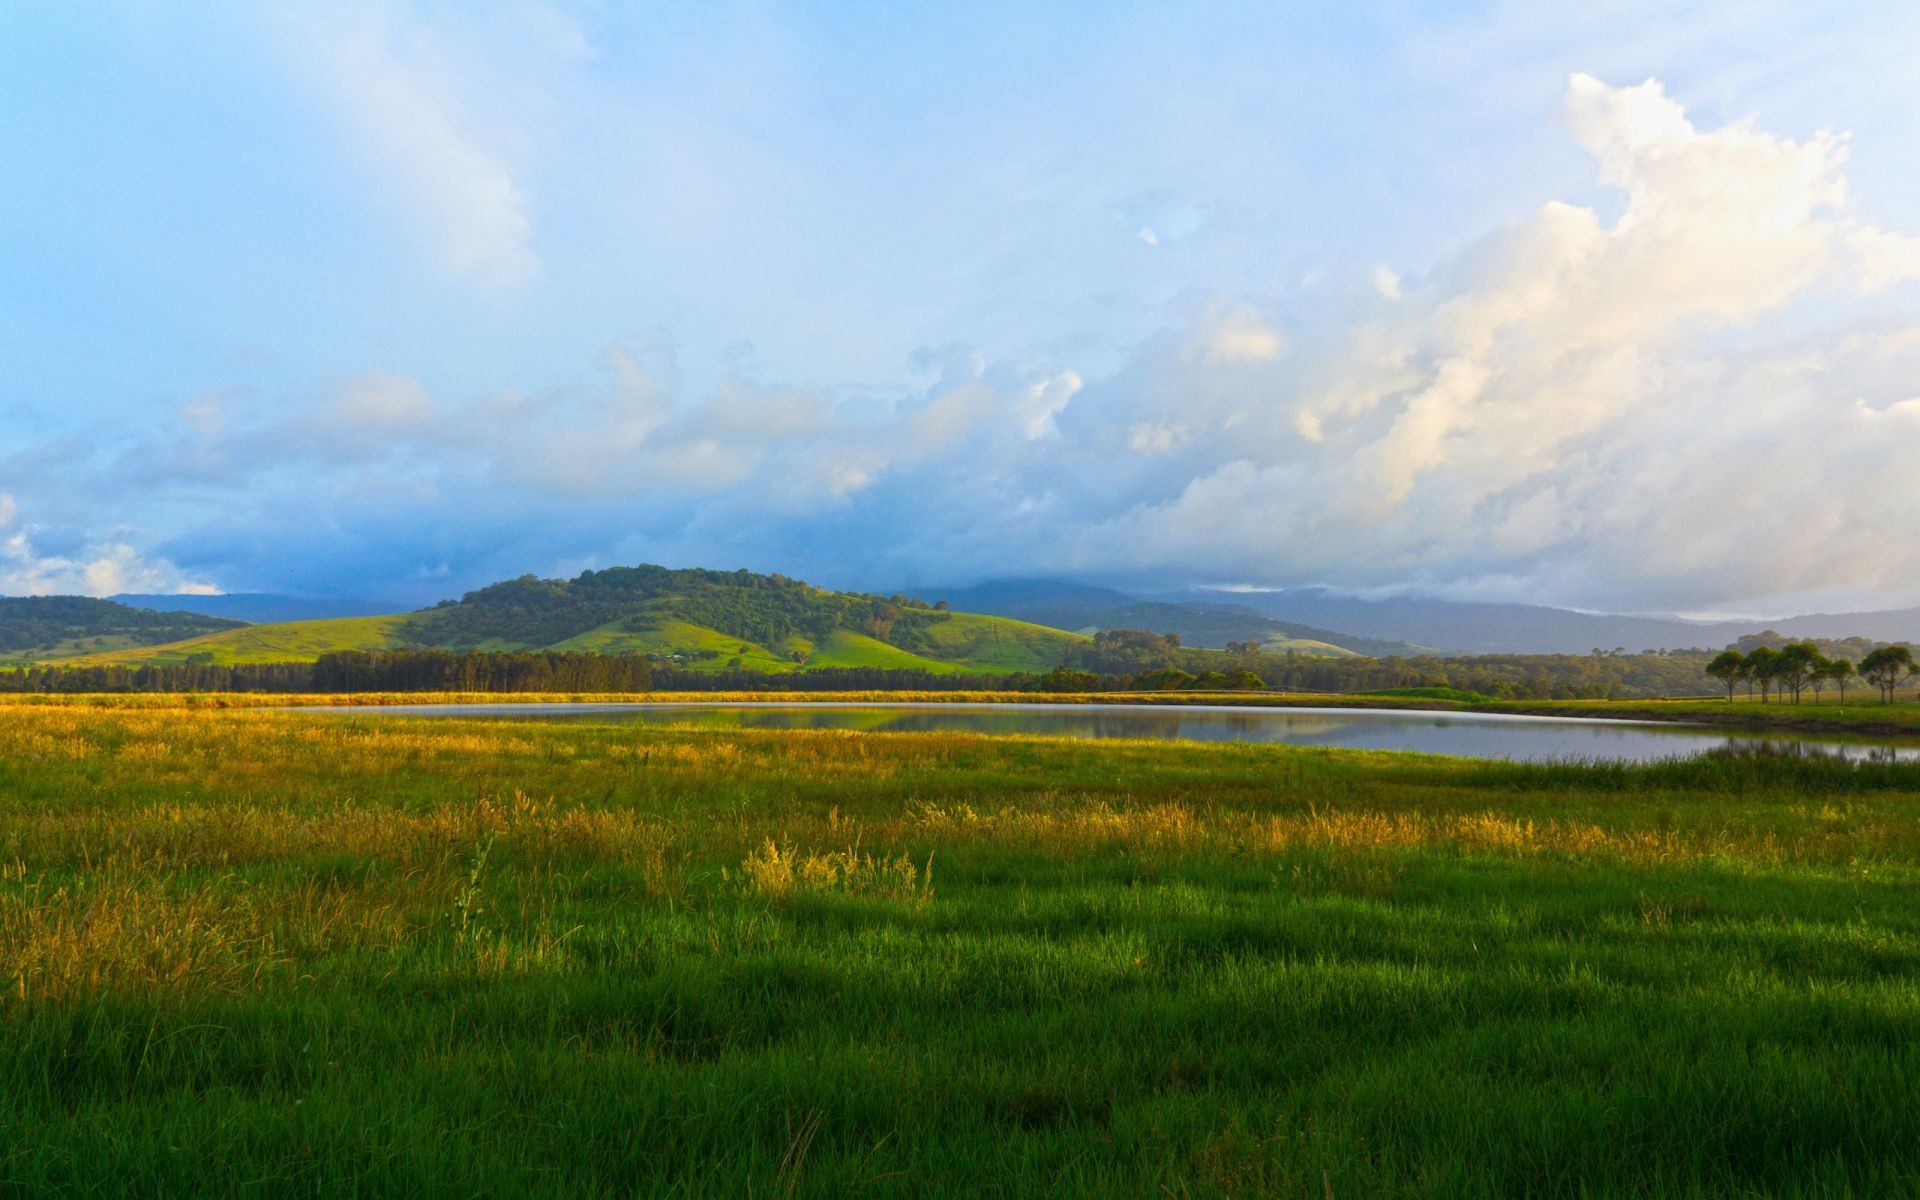 landscape nature green grass trees lake sky. android wallpapers for